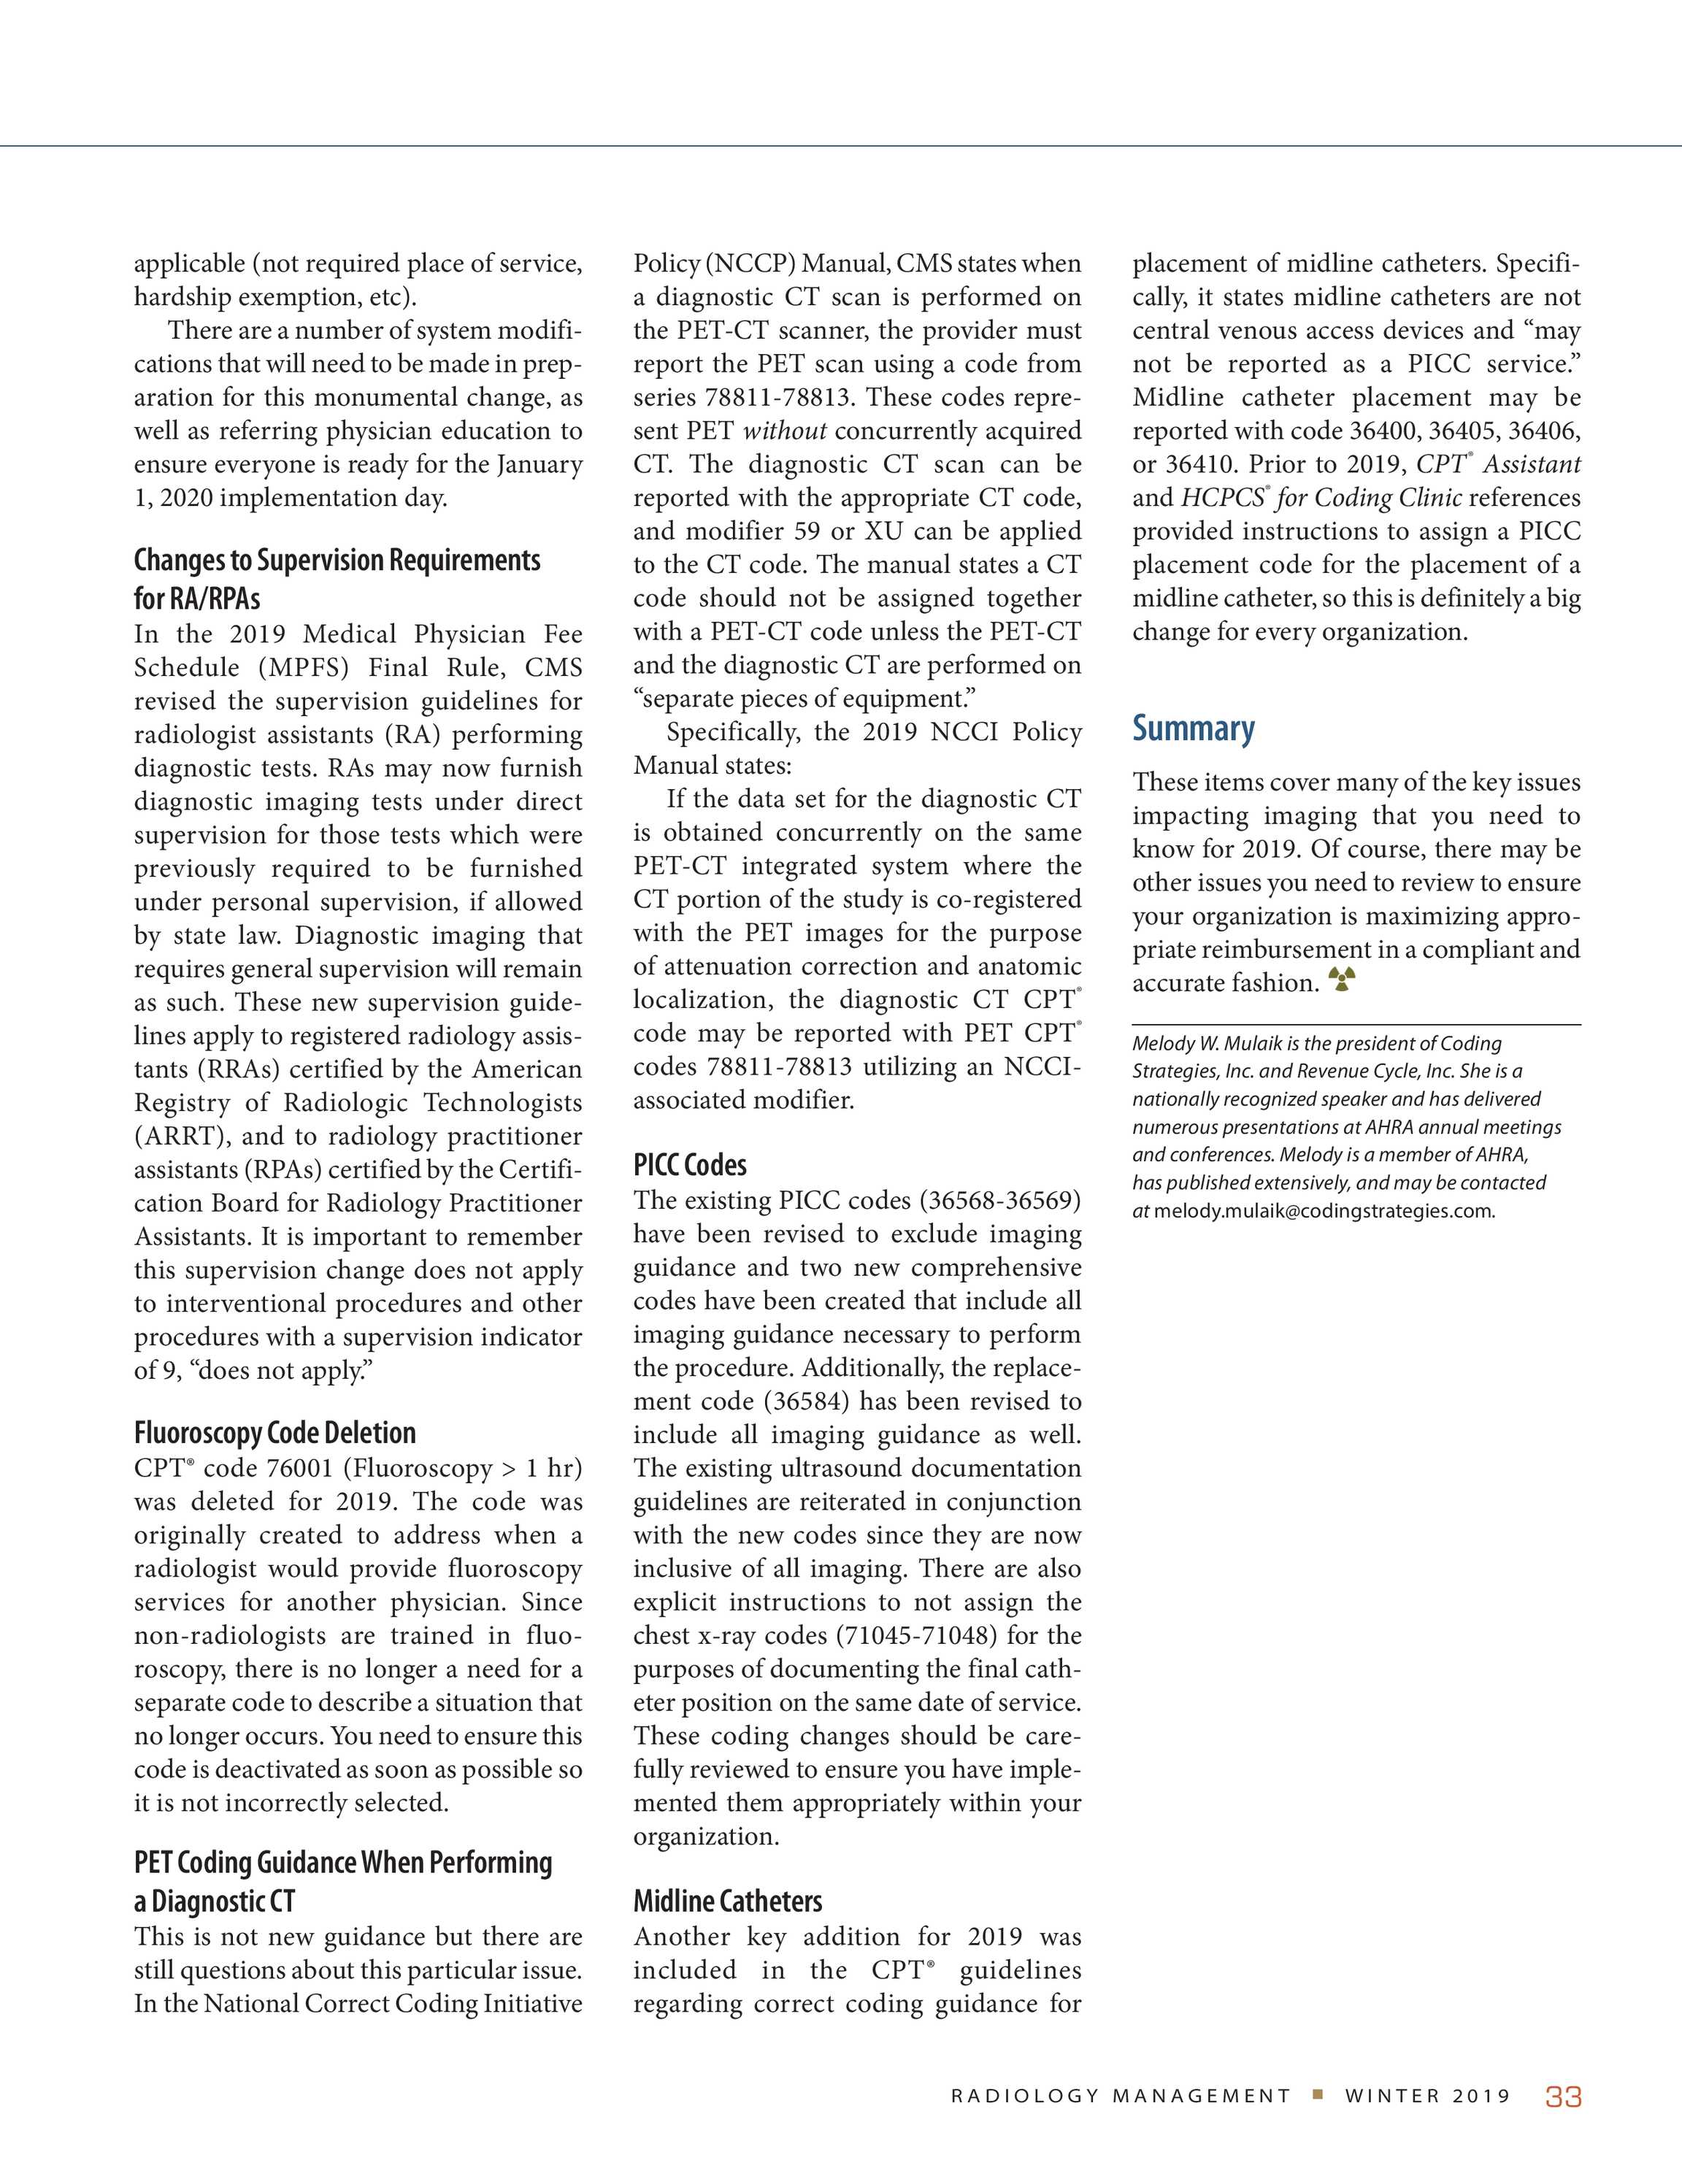 Radiology Management - January/February 2019 - page 33